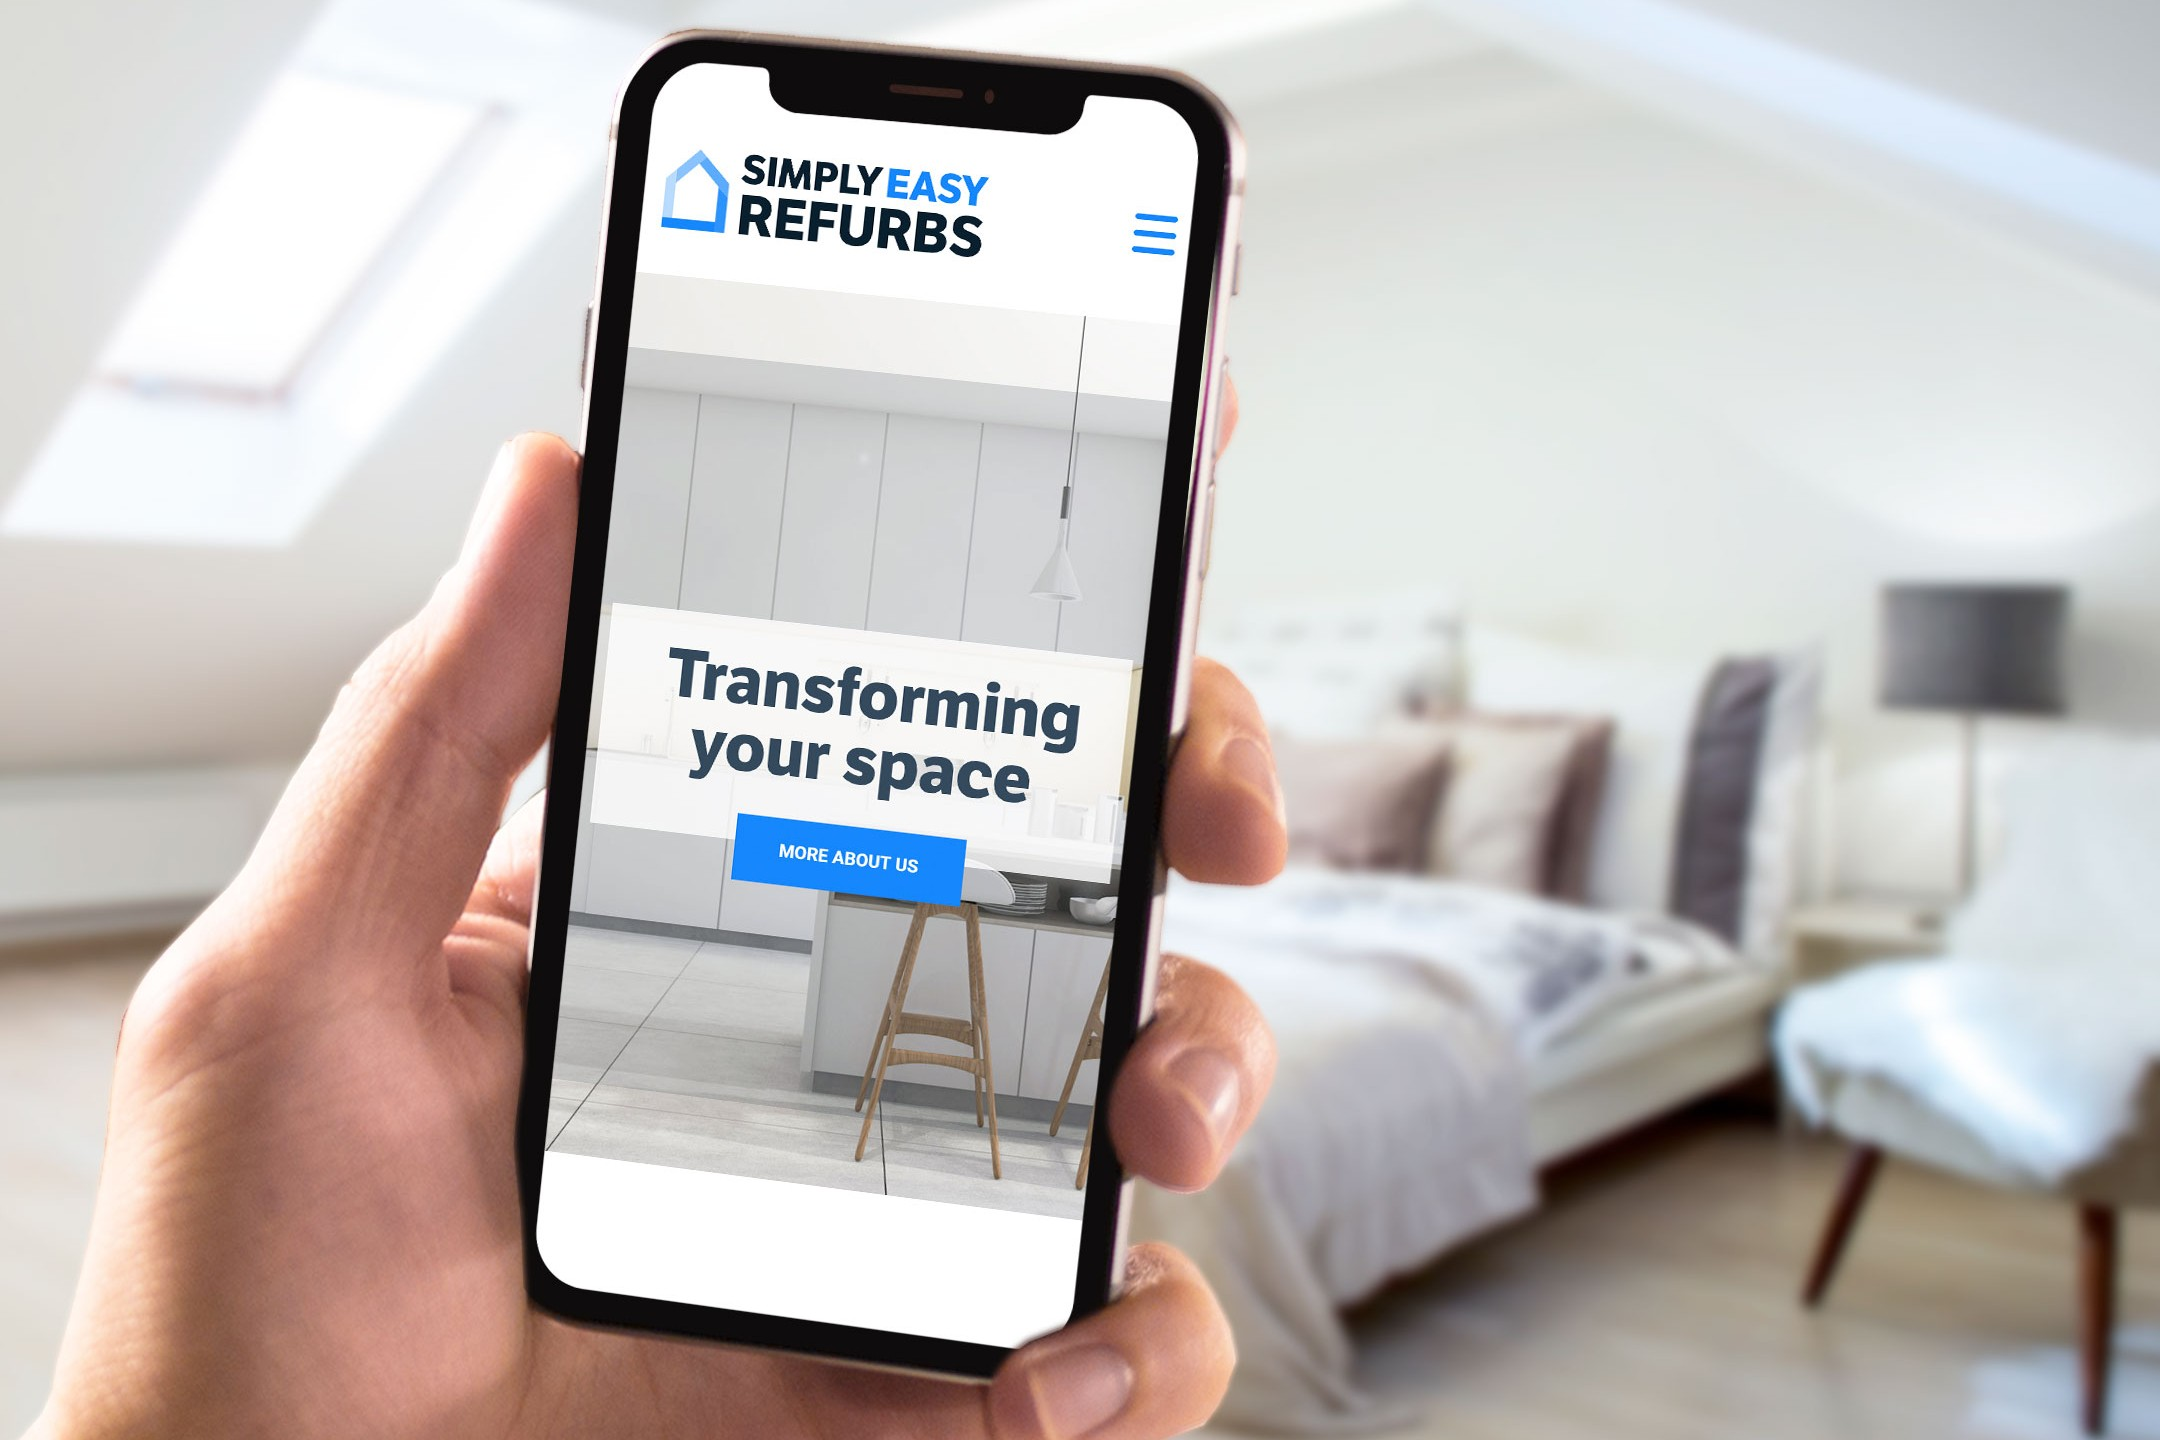 SimplyEasy Refurbs website on mobile